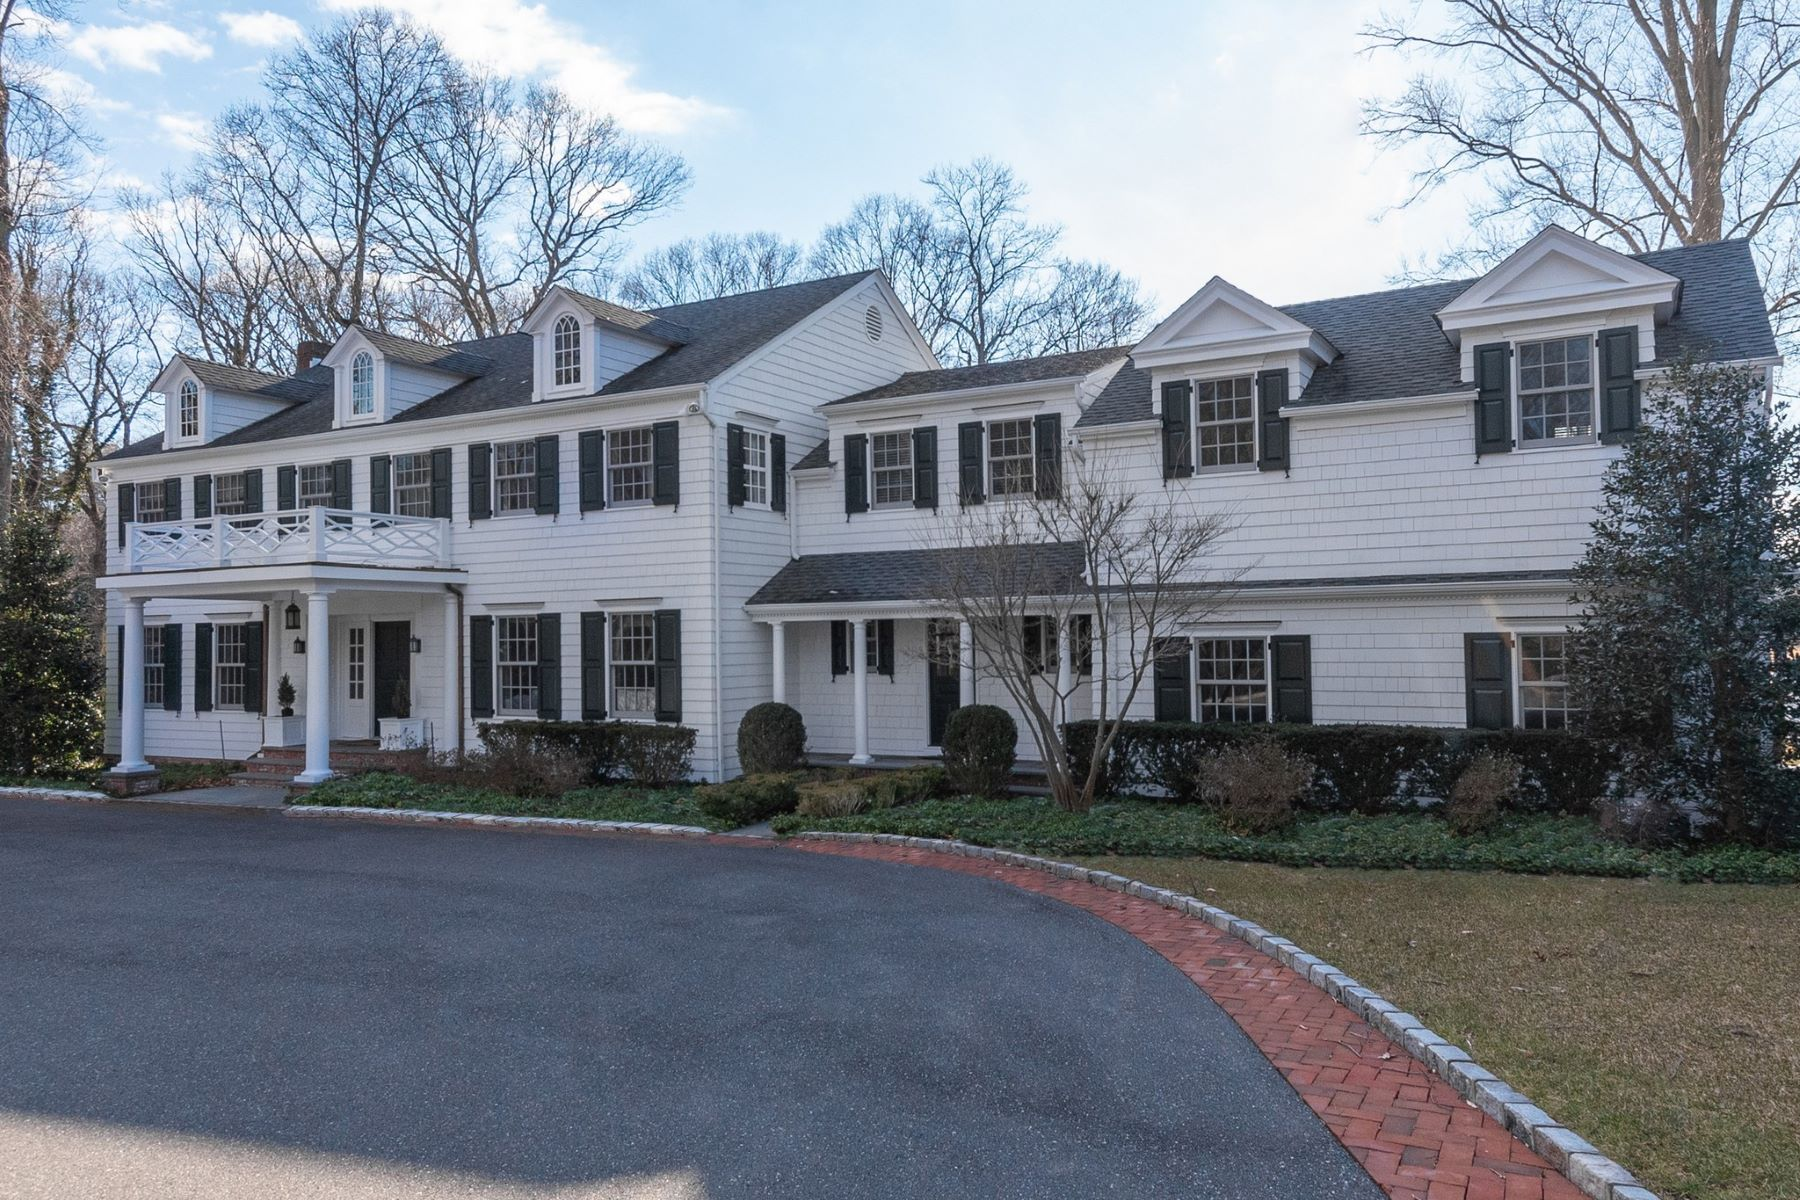 Single Family Homes for Sale at Glen Cove 137 Piping Rock Rd Glen Cove, New York 11542 United States